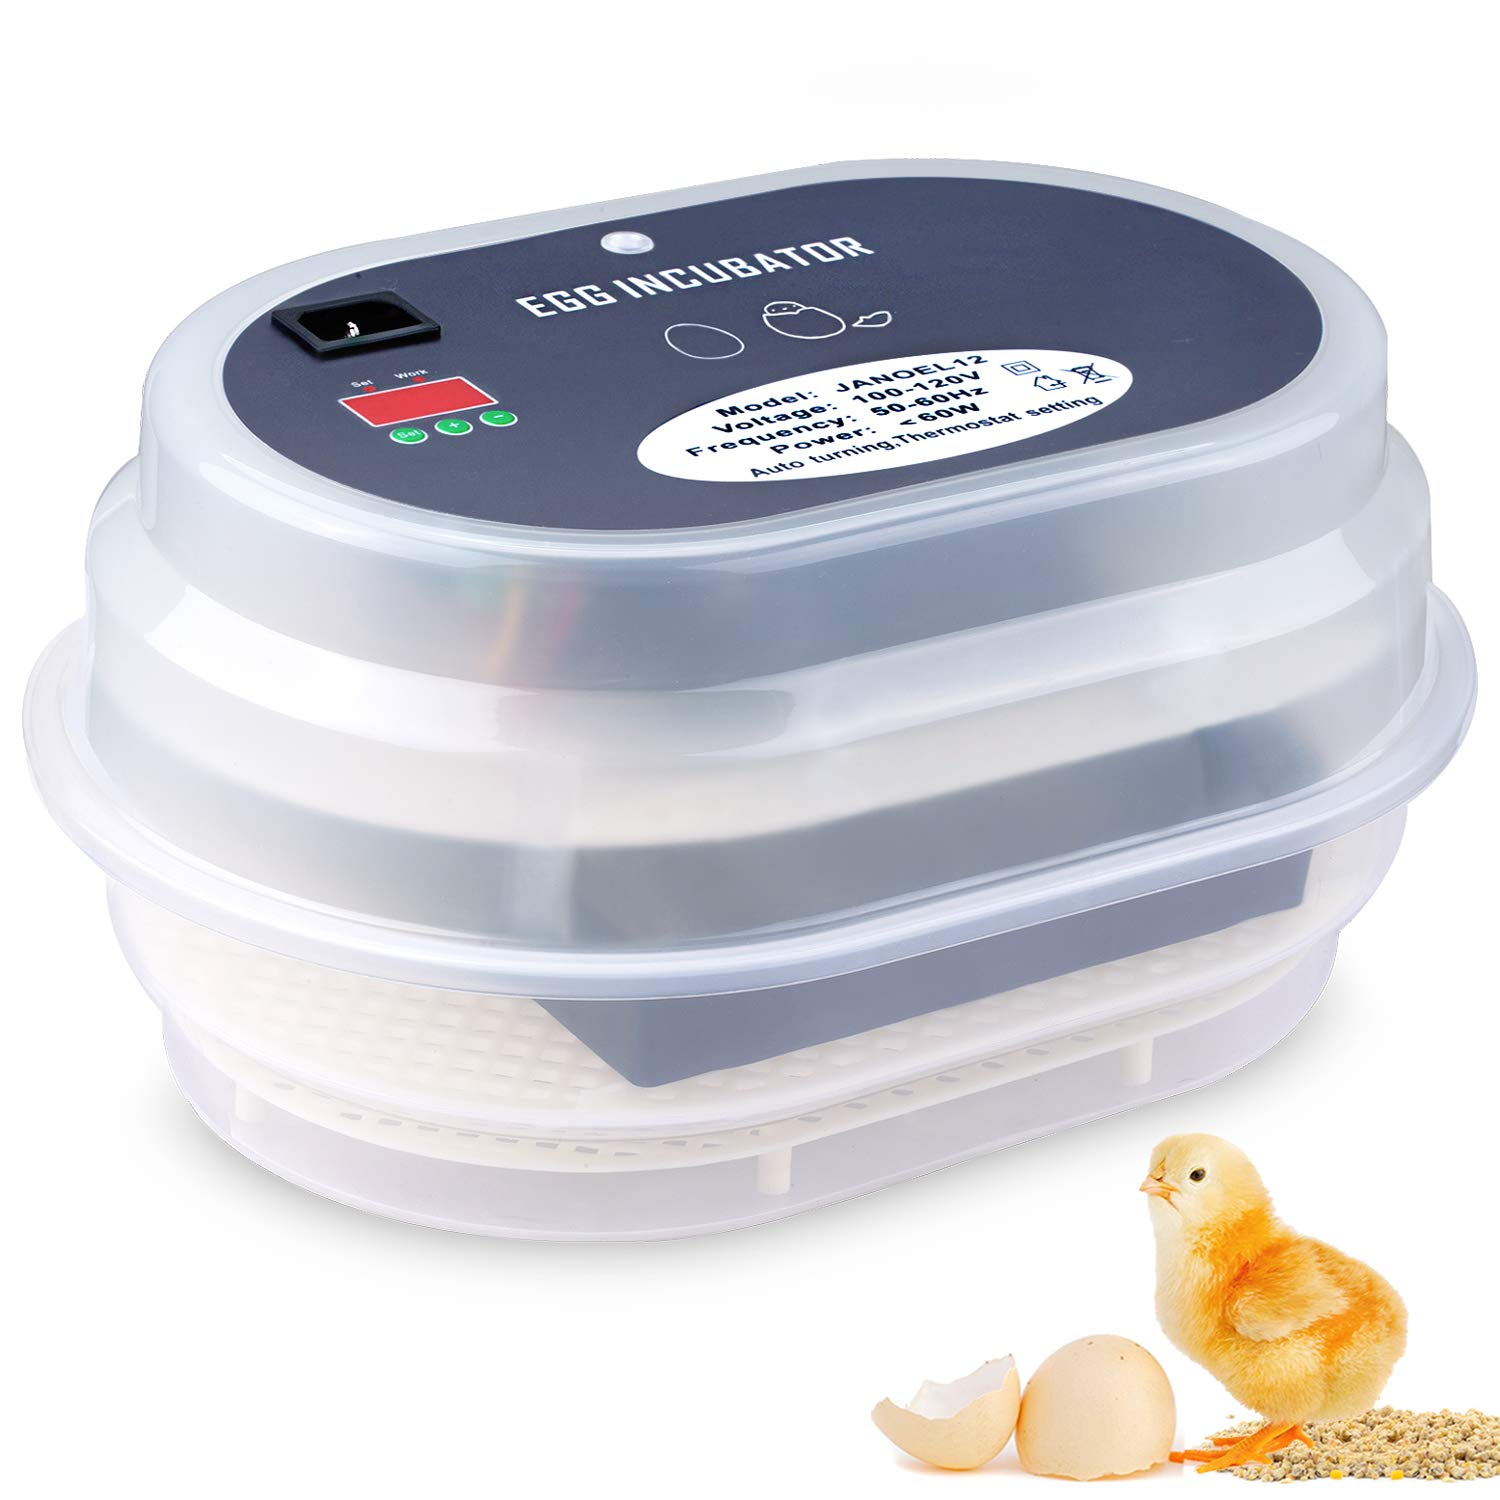 Egg Incubator, HBlife 9-12 Digital Fully Automatic Incubator for Chicken Eggs, Poultry Hatcher for Chickens Ducks Goose Birds by hblife